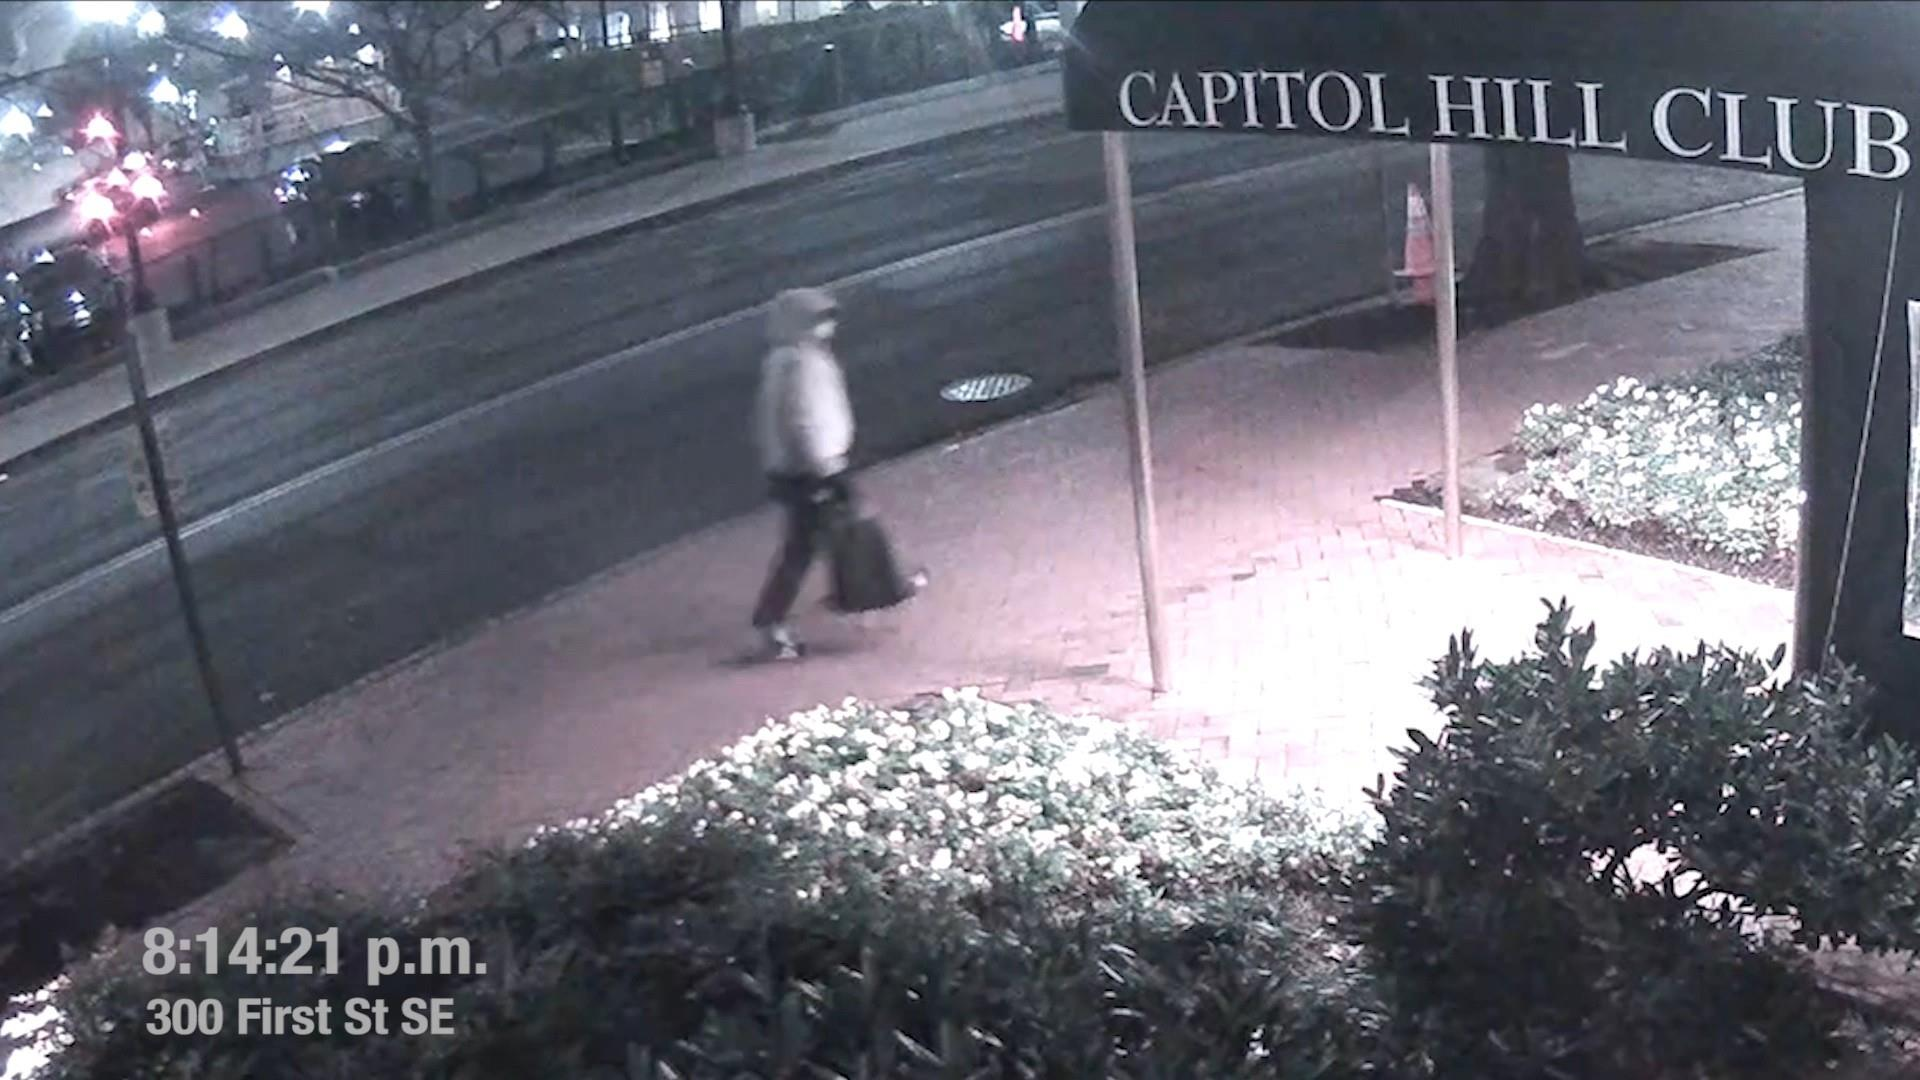 FBI releases new video of person planting bombs before Capitol riot